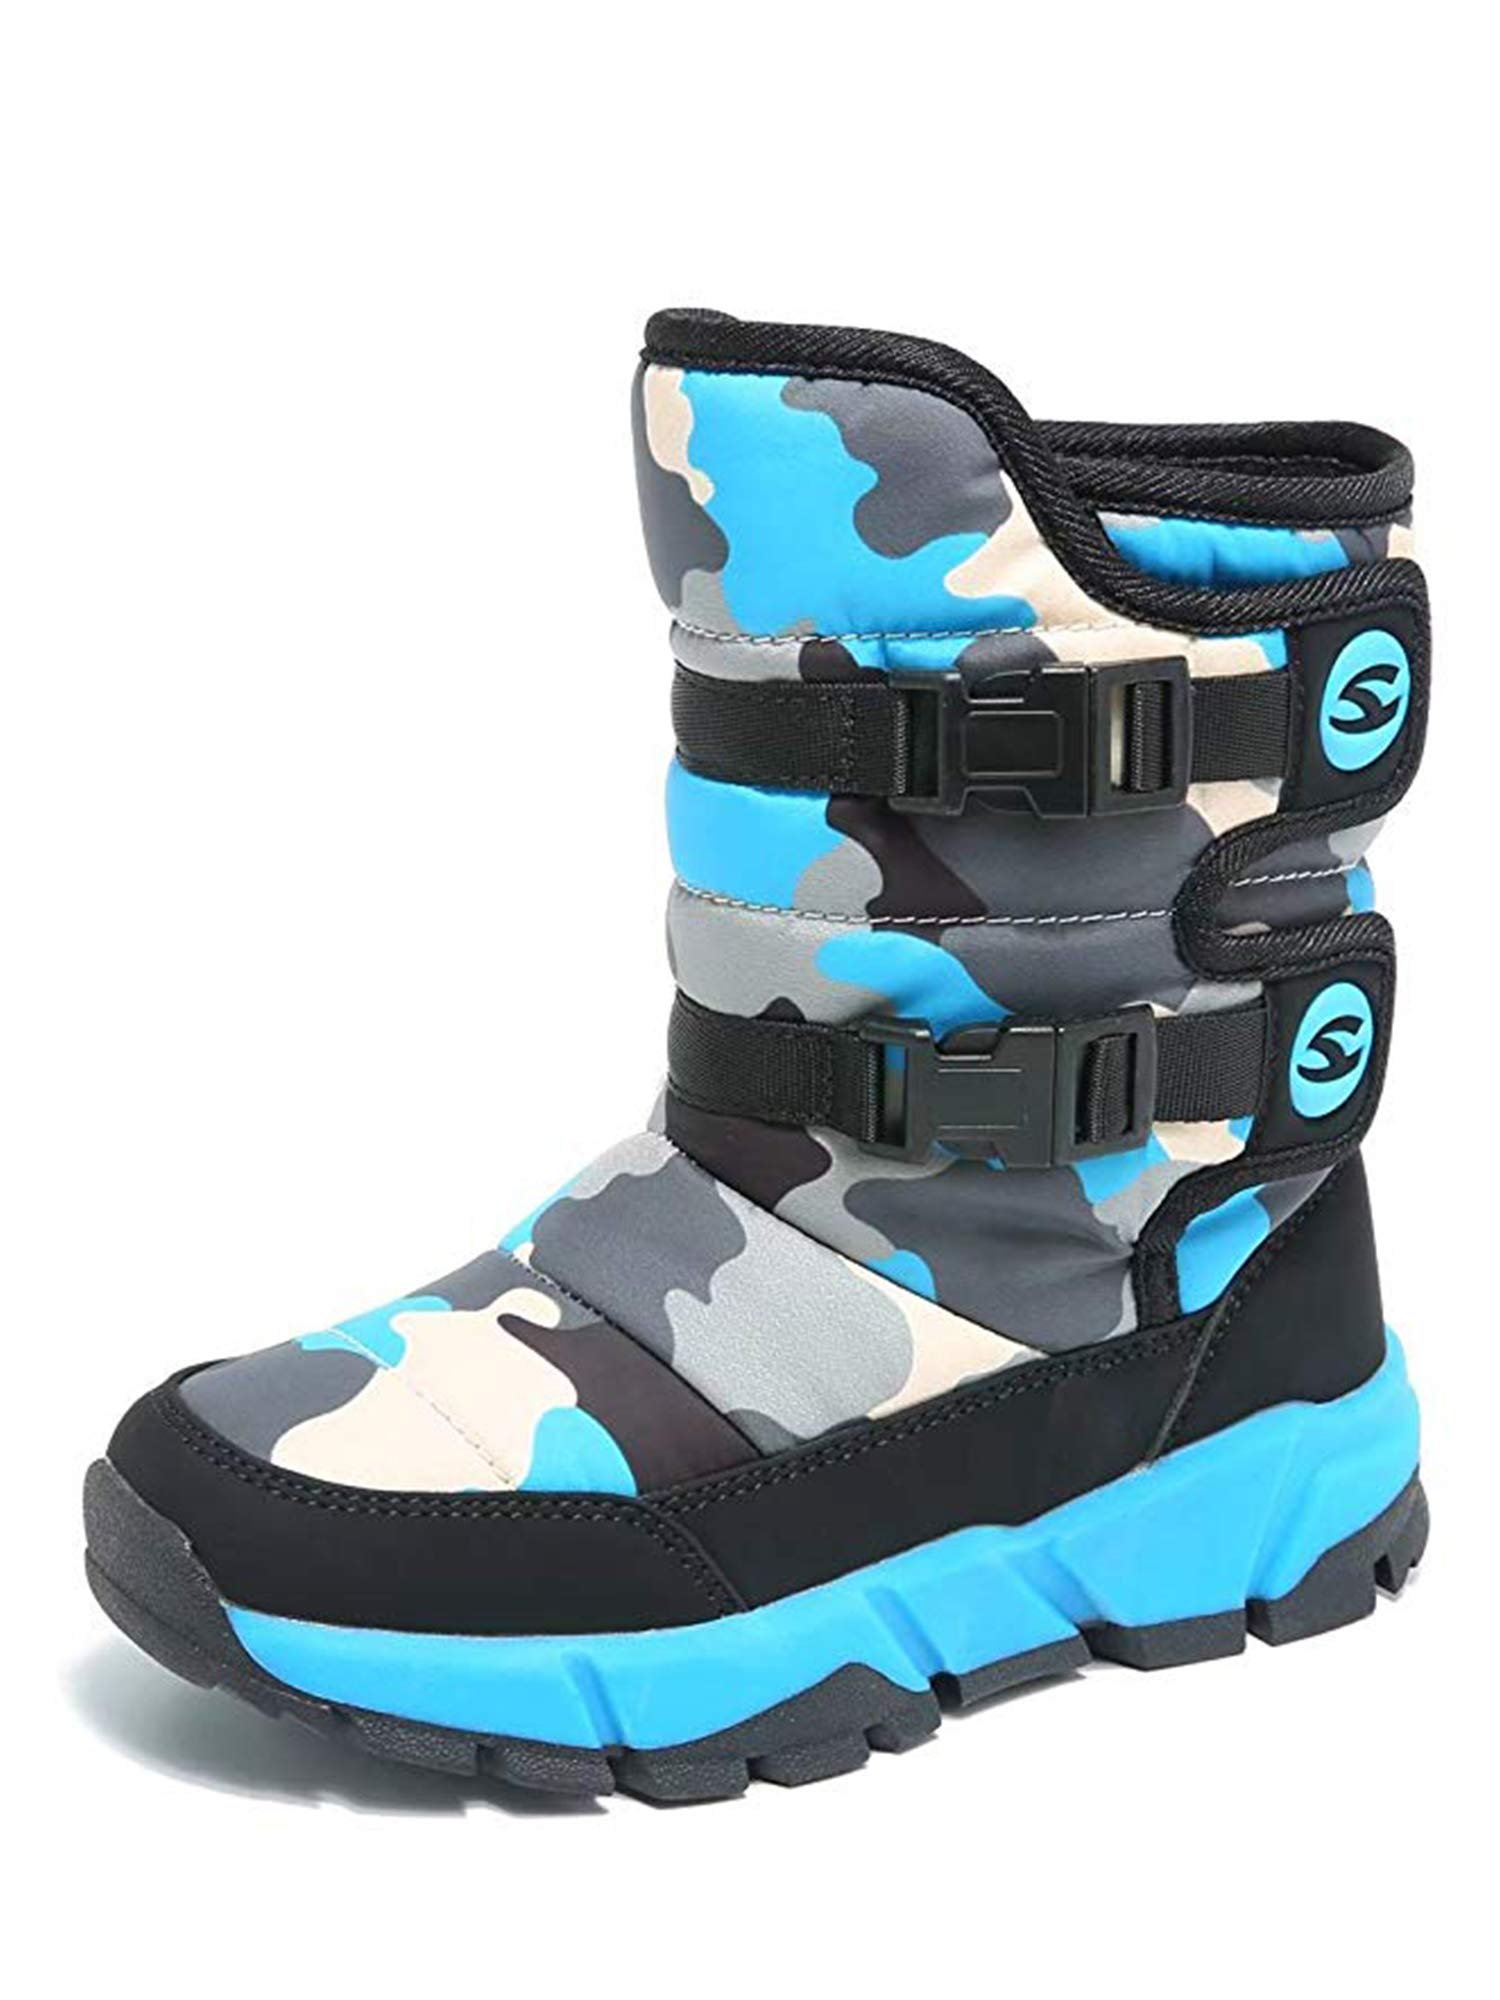 Snow Boots for Boys and Girls Waterproof Warmth Outdoor Winter Shoes(13) Blue